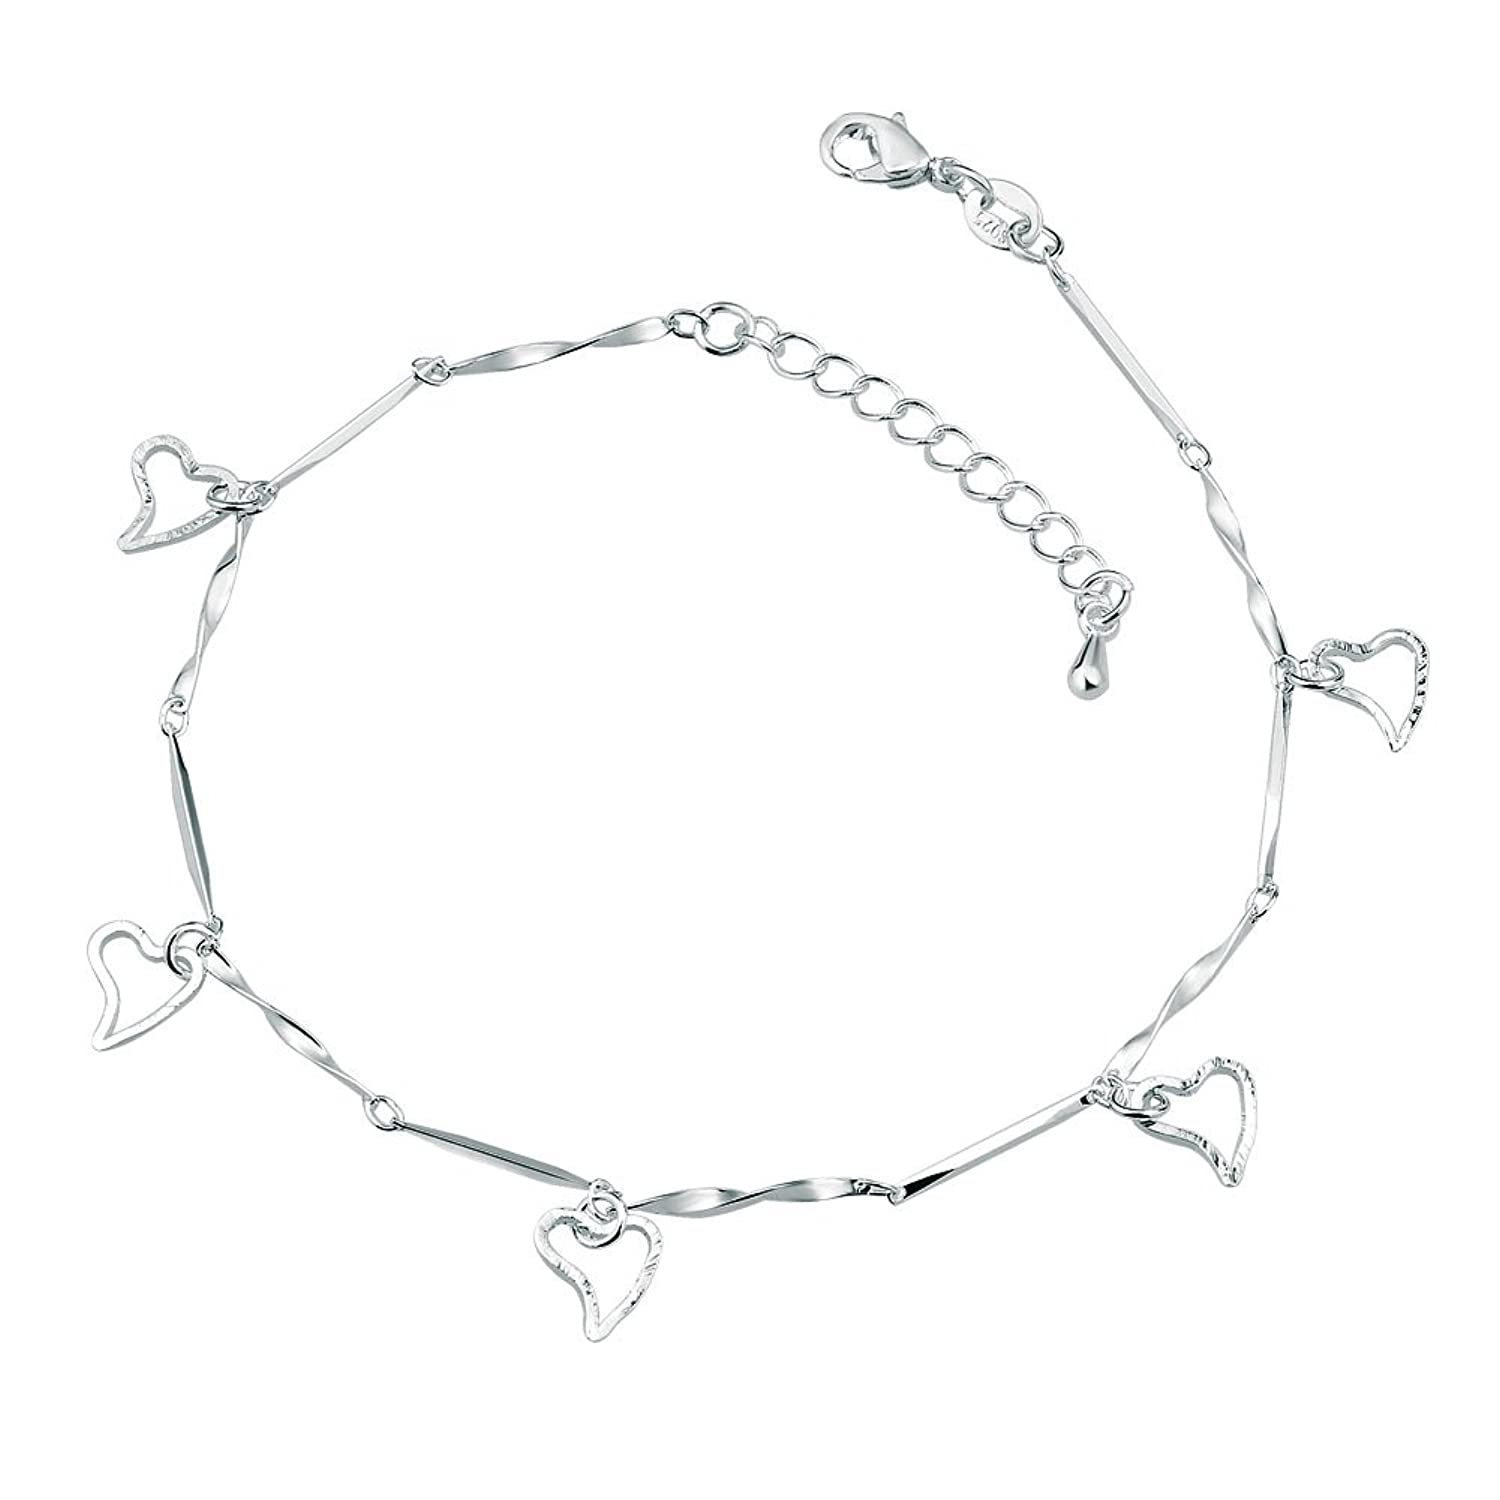 polished silver dimensional sterling inch heart anklet length width p mm weight grams puffed